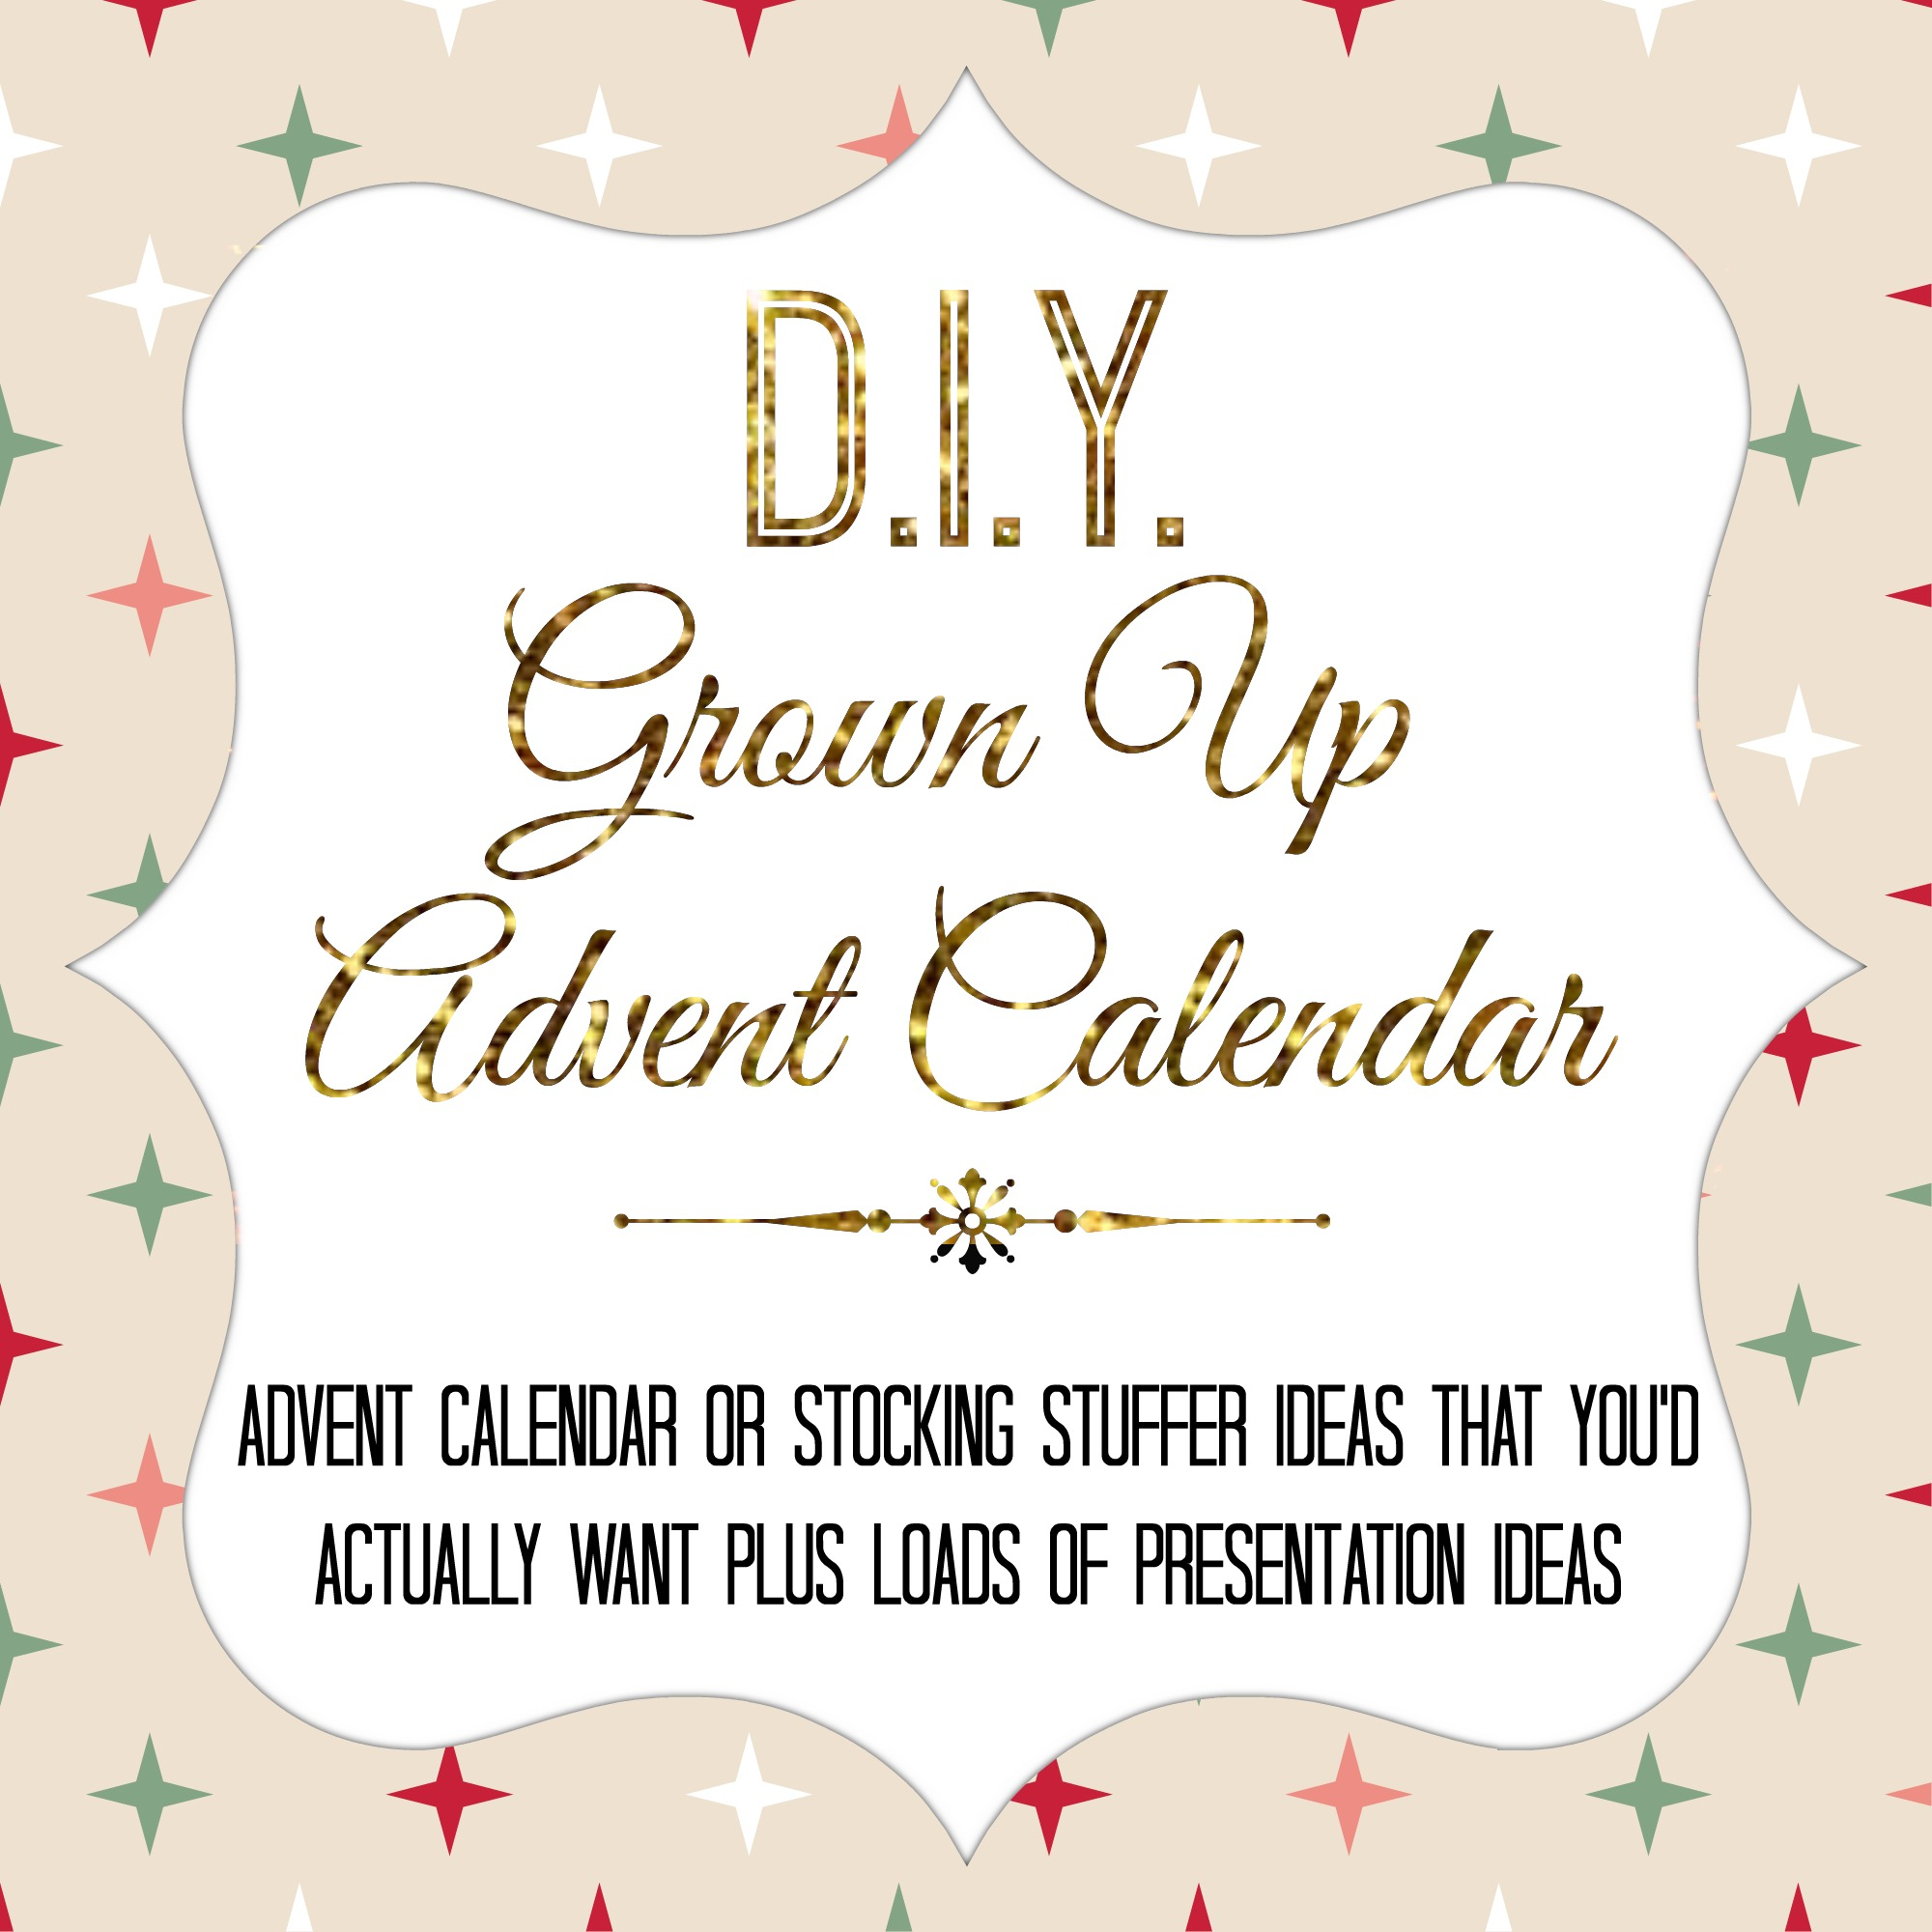 Craft: Grown Up Advent Calendar {Advent Calendar or Stocking Stuffer Ideas That You'd Actually Want Plus Loads Of Presentation Ideas}